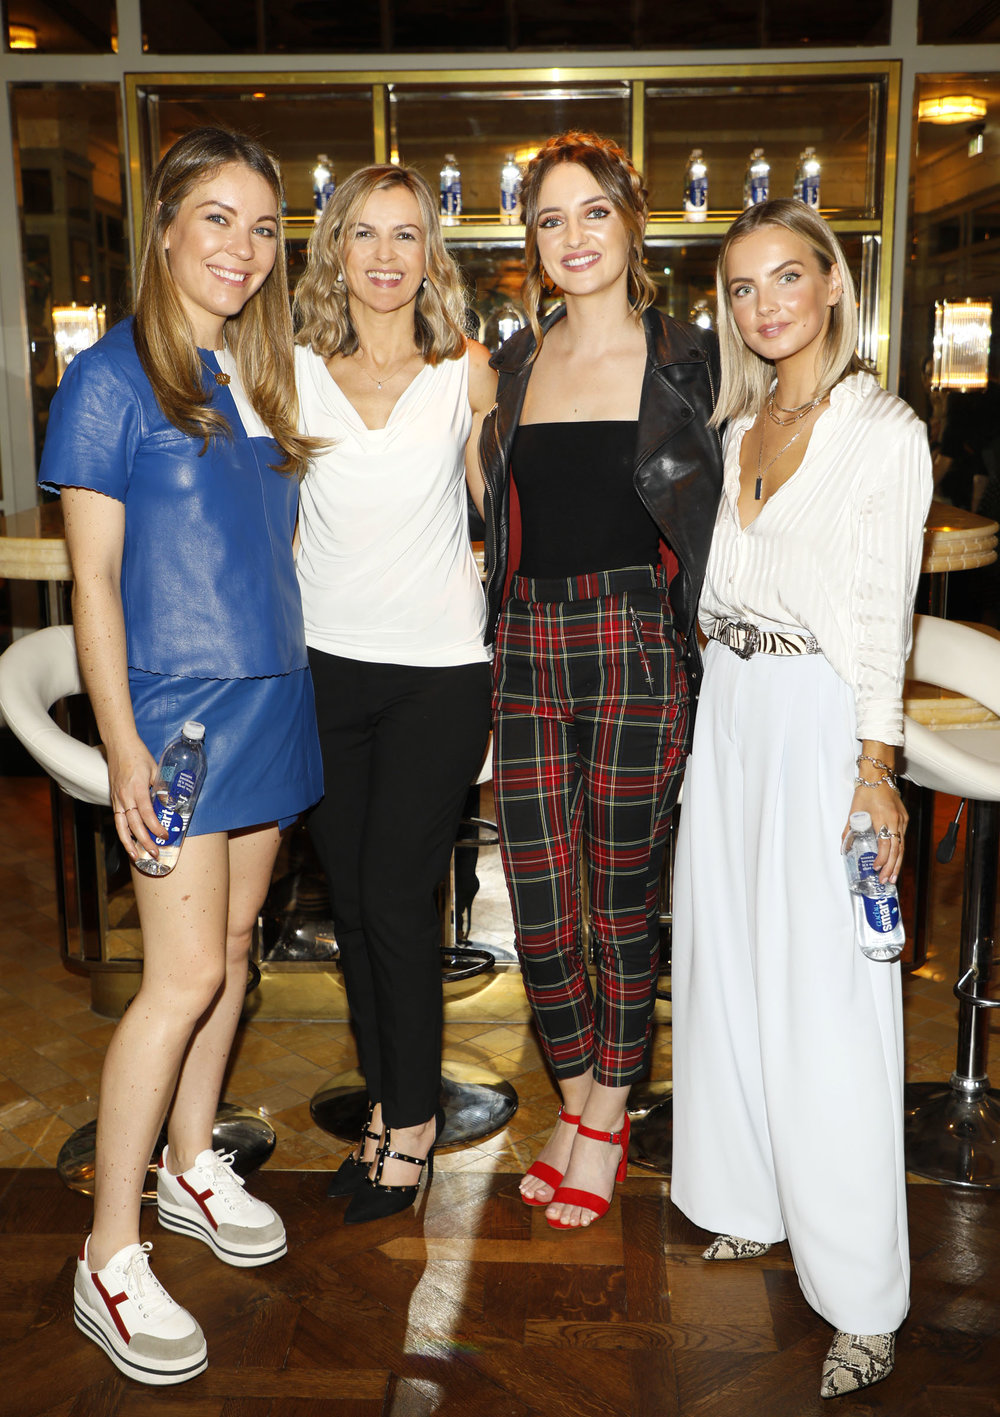 Emma Manley, Elaine Ross, Caroline Foran and Joanna Cooper at the launch of Smartwater which was held at the Ivy .photo Kieran Harnett